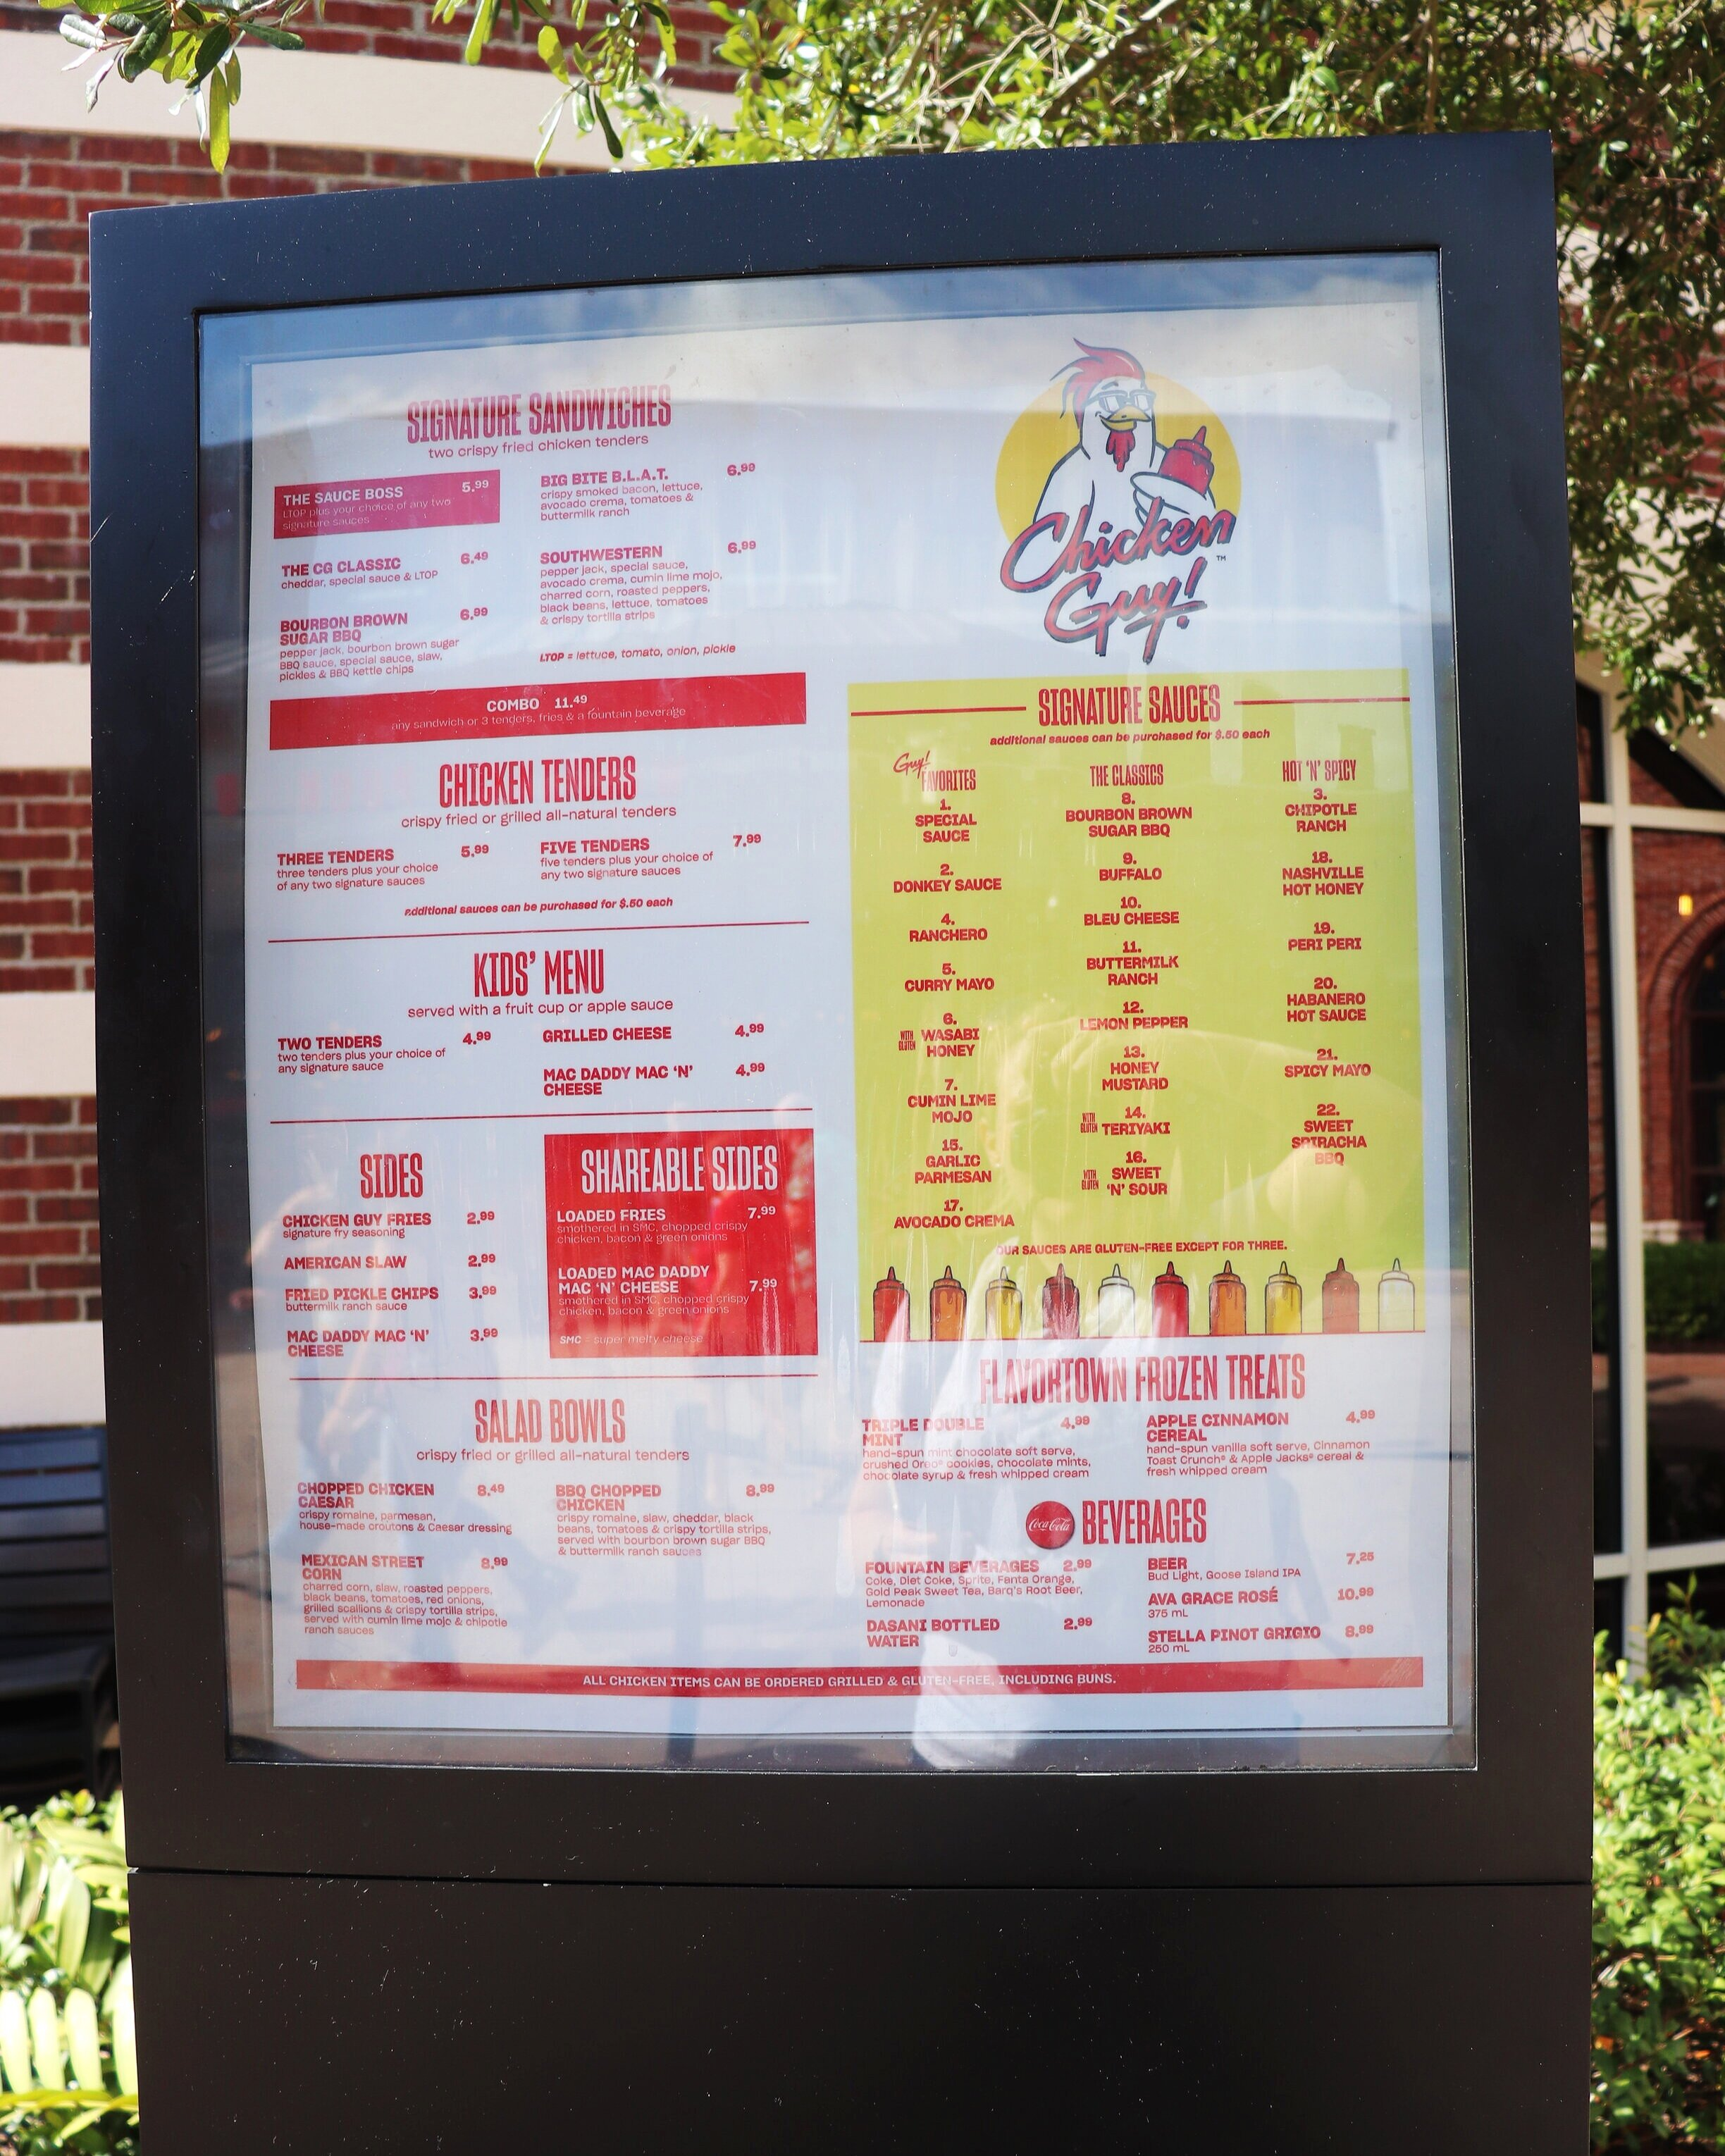 The menu isn't large but is full of flavor!